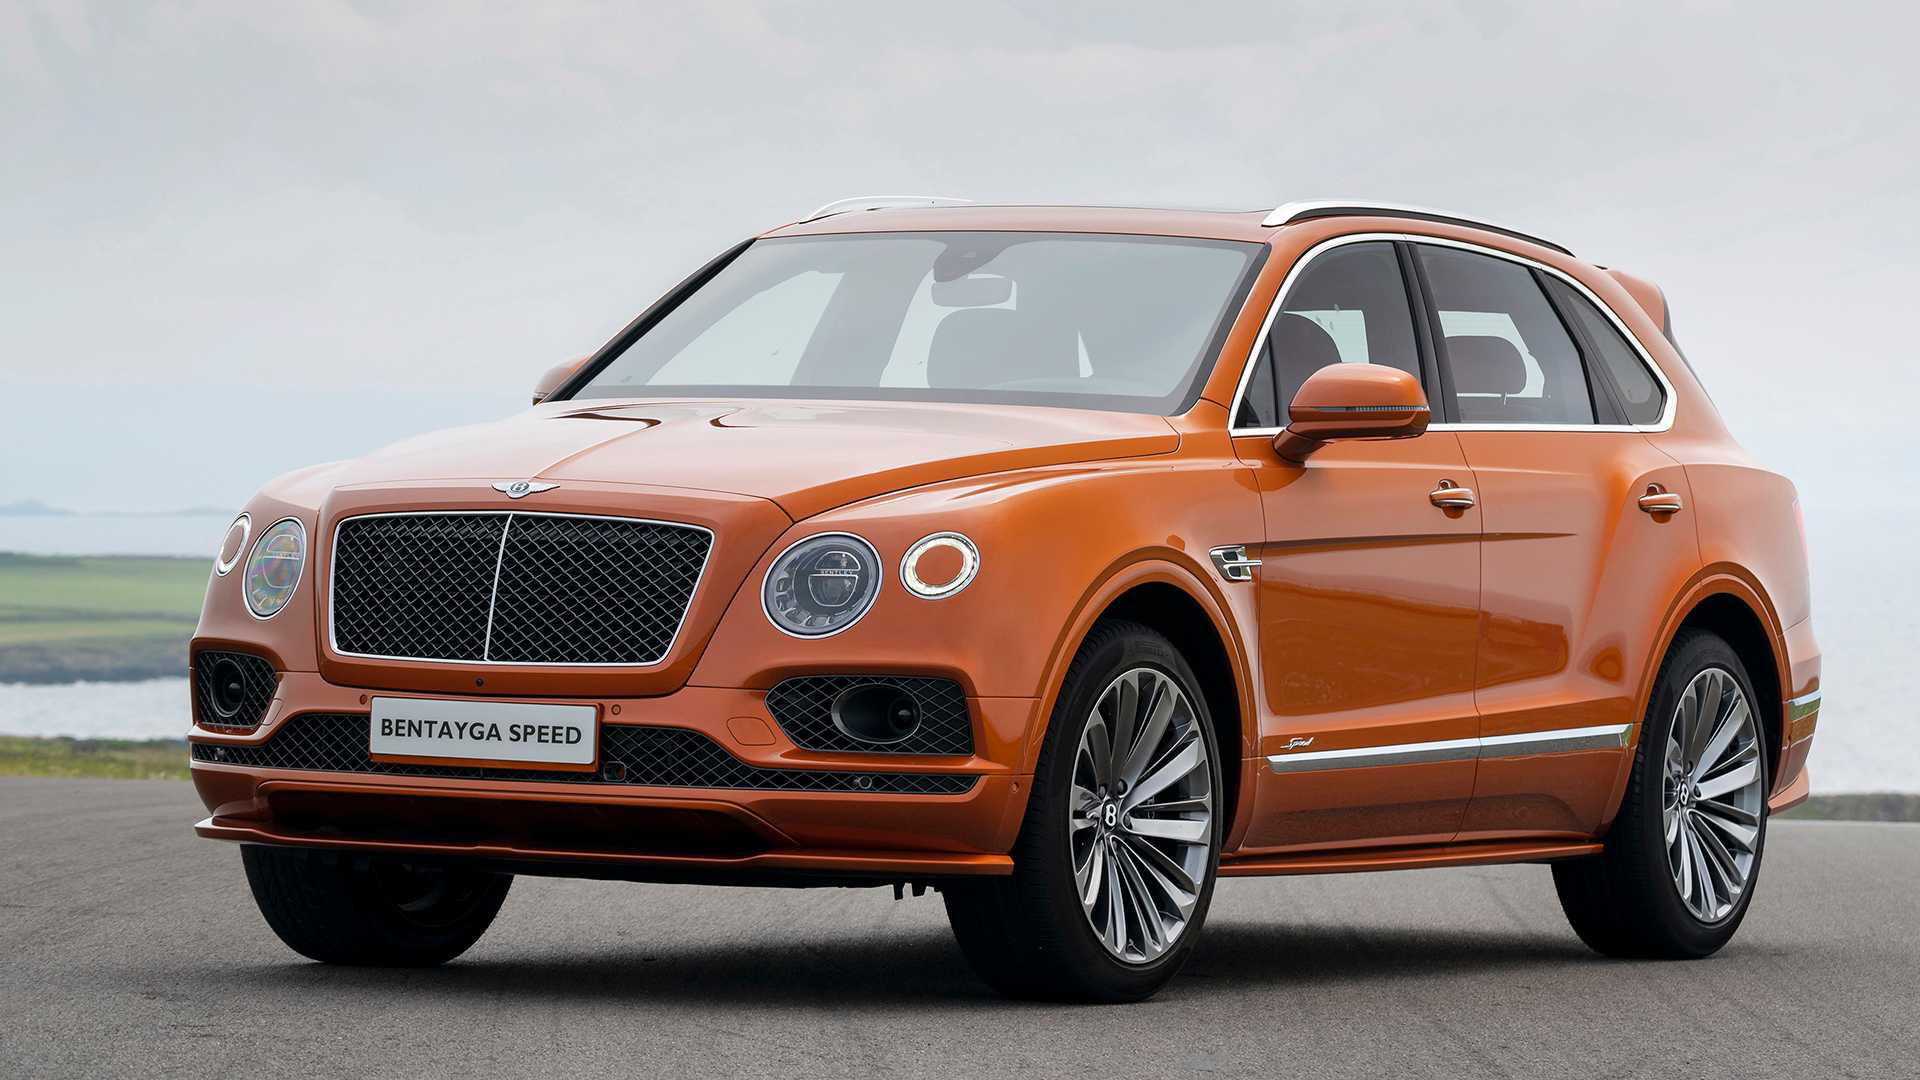 Bentley captures Bentayga Speed craftsmanship in new film